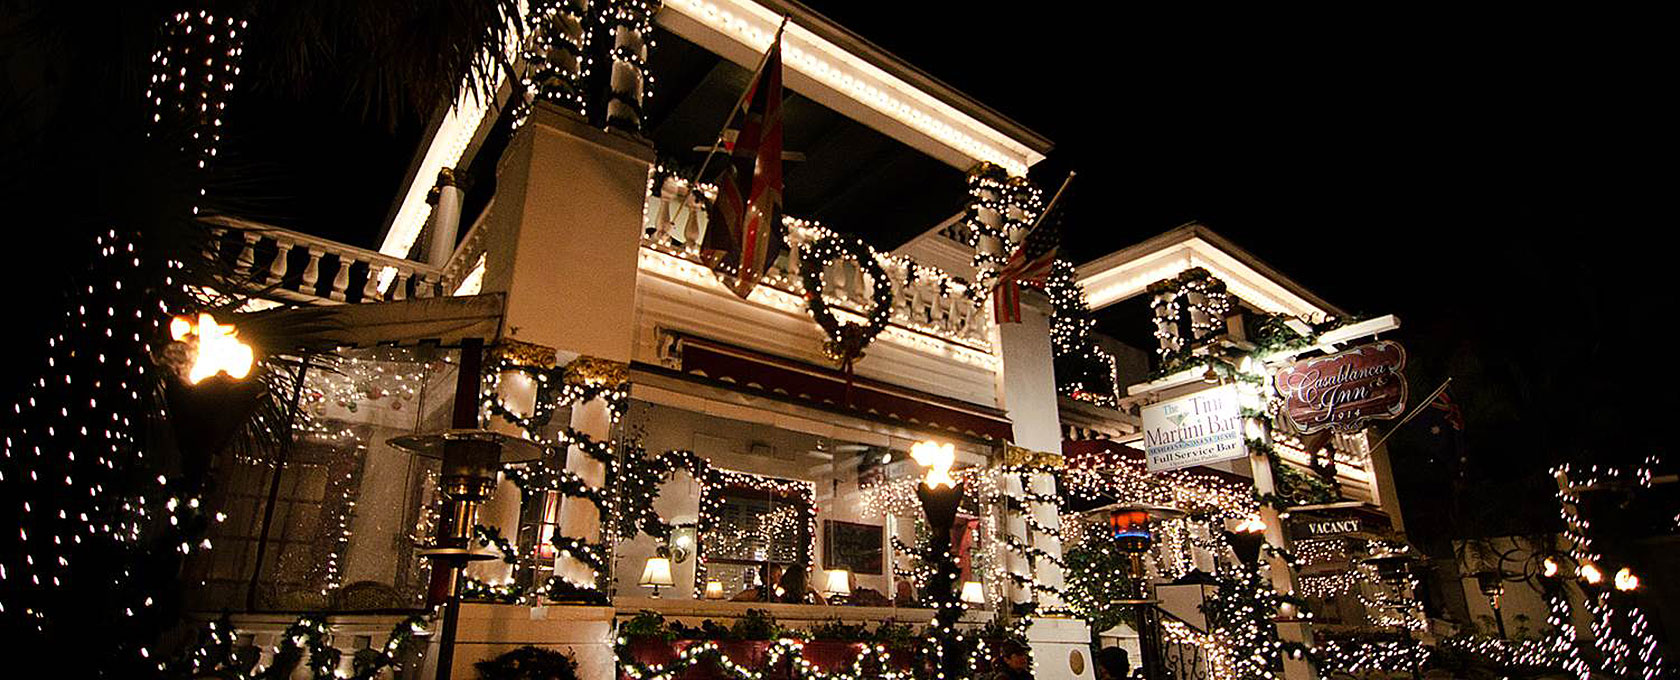 picture of St. Augustine's Casablanca Inn decorated with holiday lights